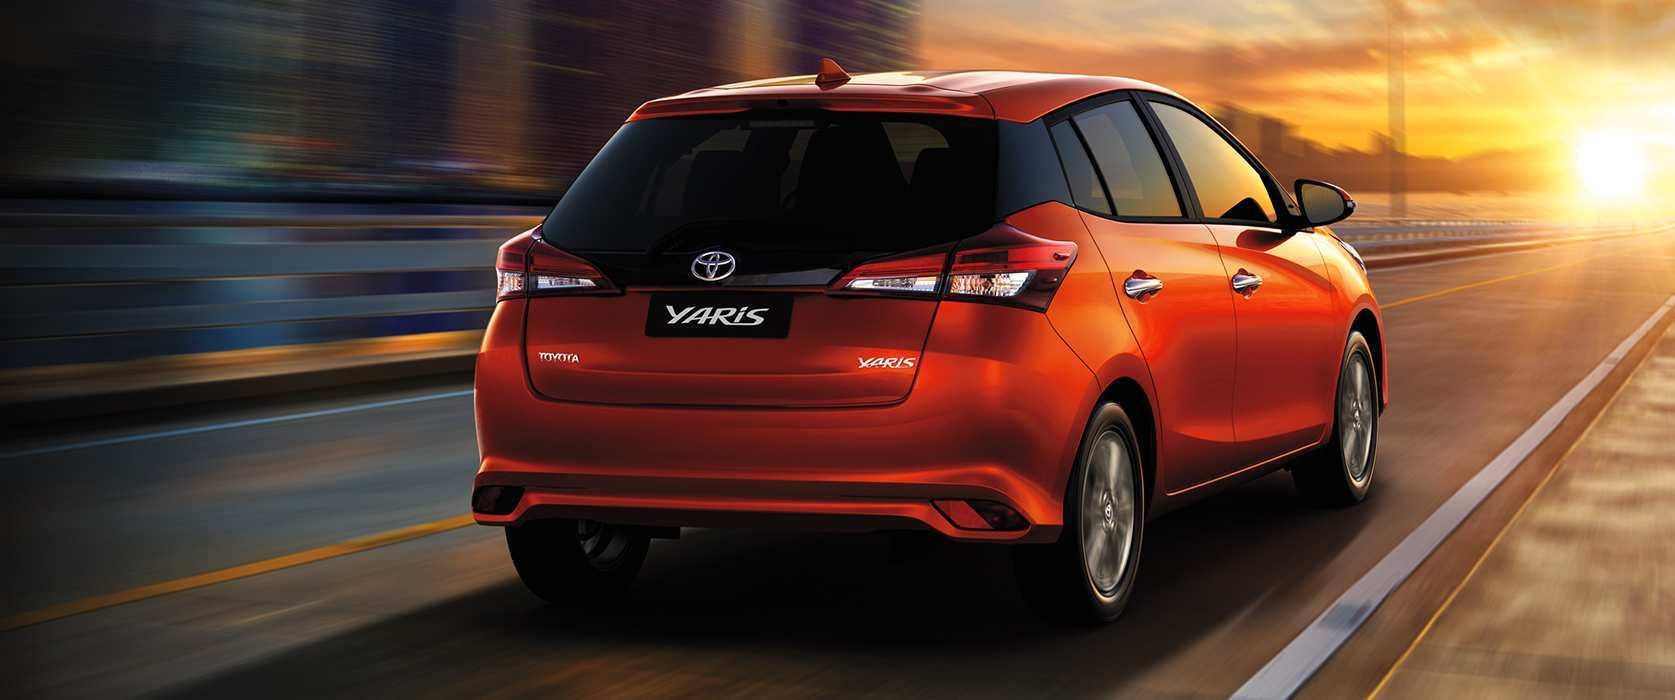 15 New Yaris 2020 Mazda 2 Pictures